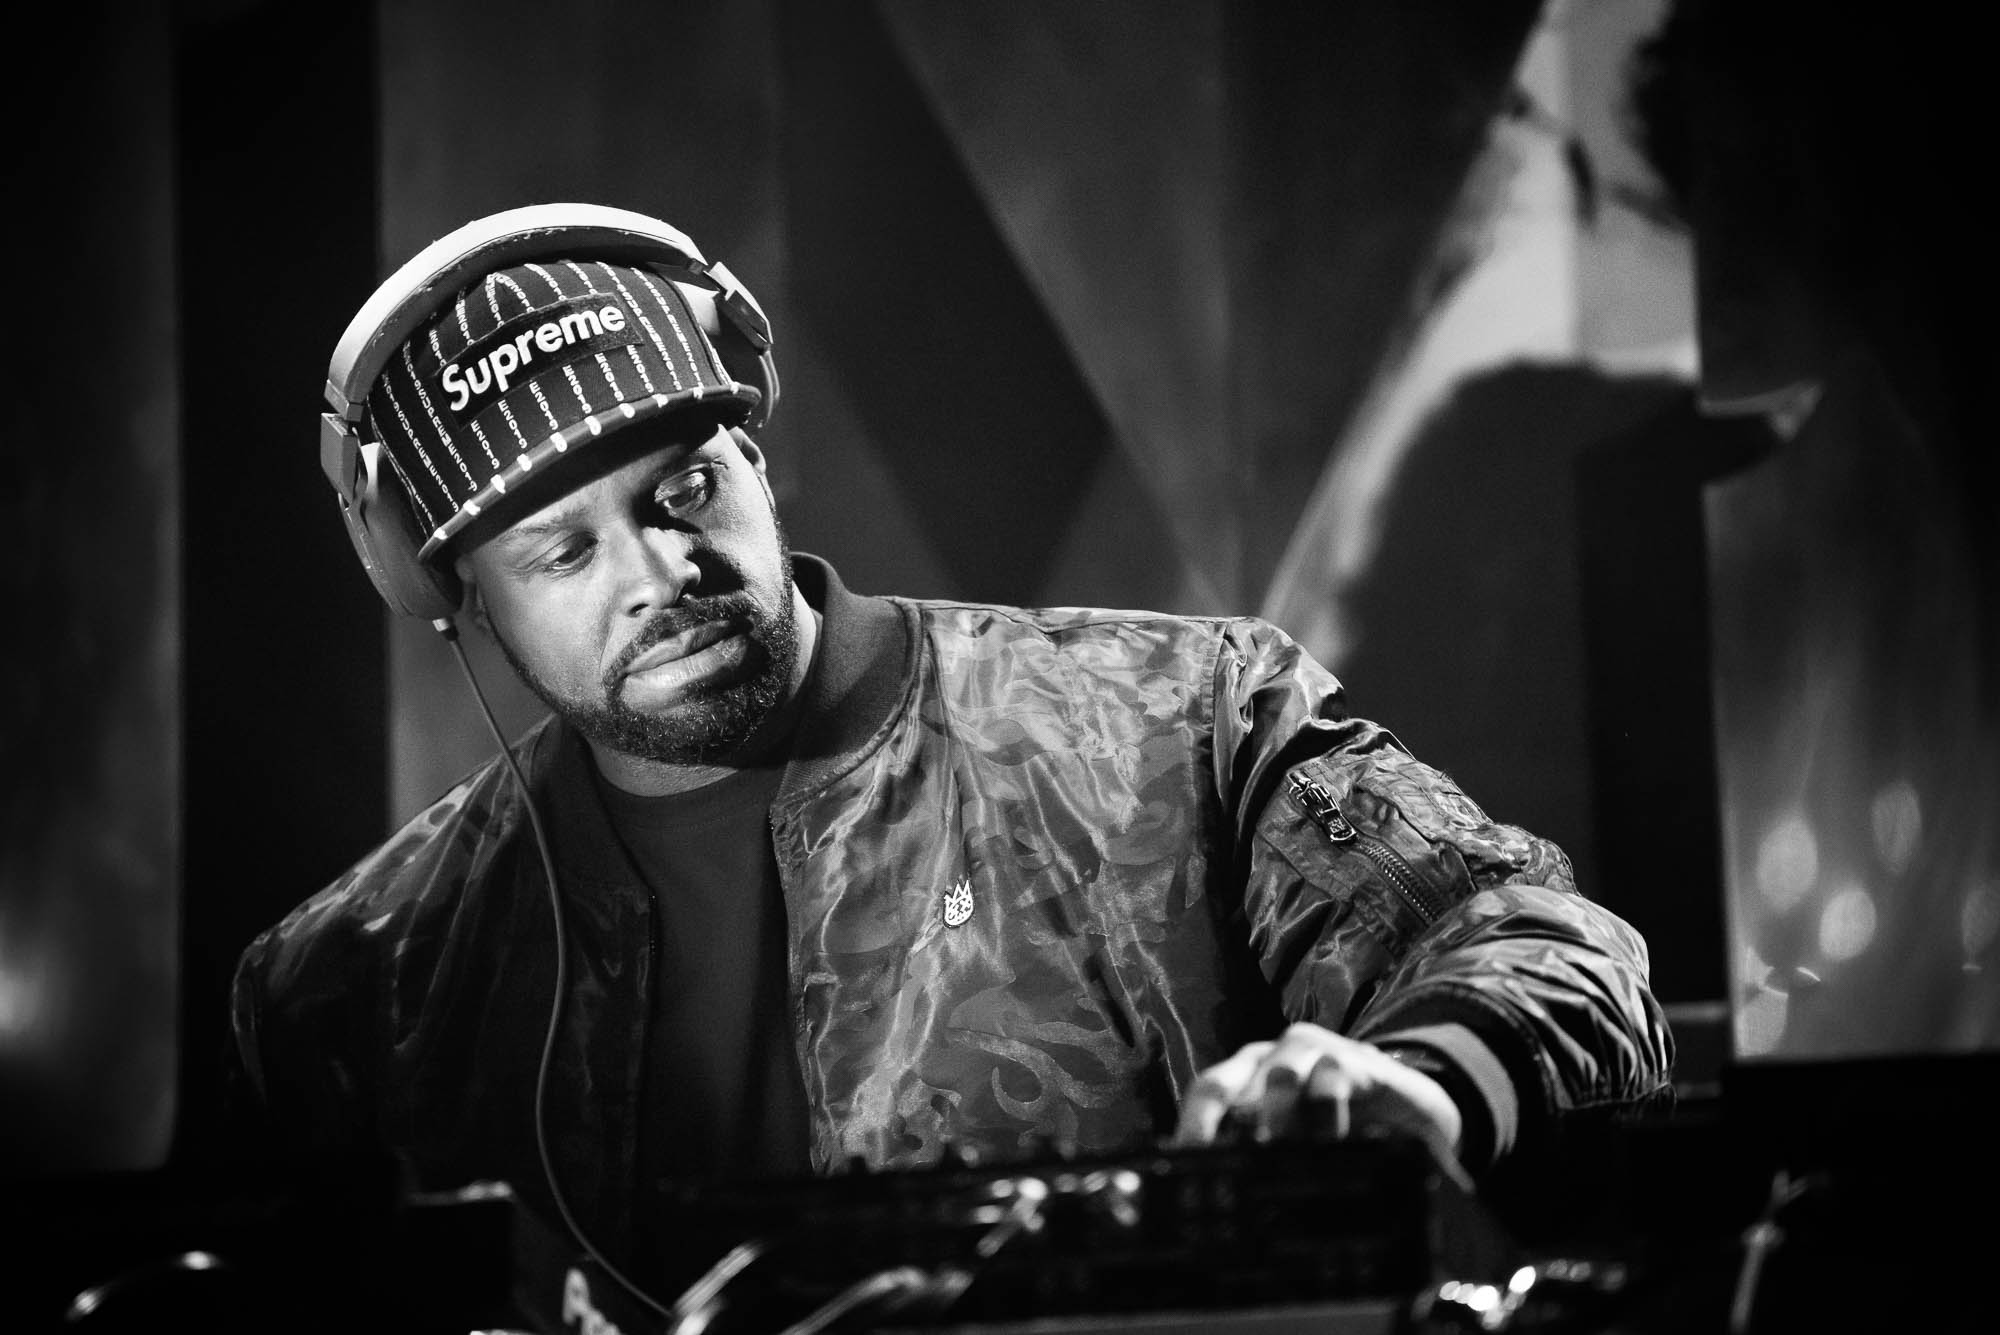 Funkmaster Flex performs a DJ set at Irving Plaza on Monday, April 1, 2019.